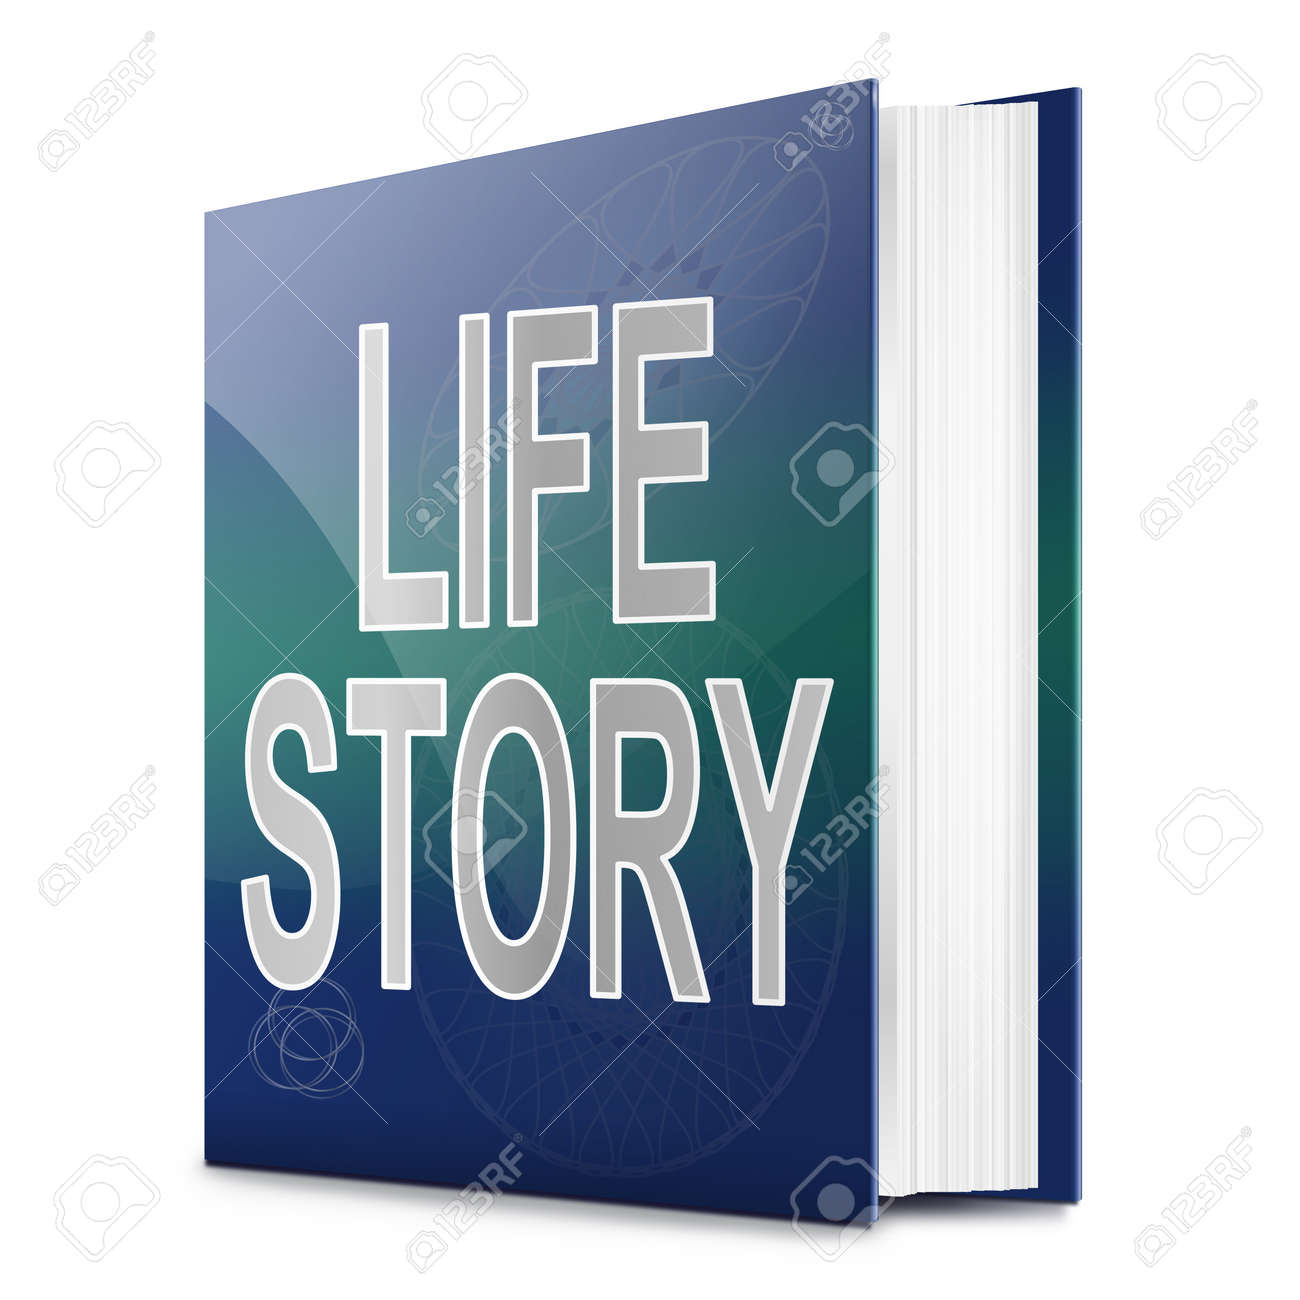 Illustration depicting a book with a life story concept title. White background. Stock Photo - 17461909